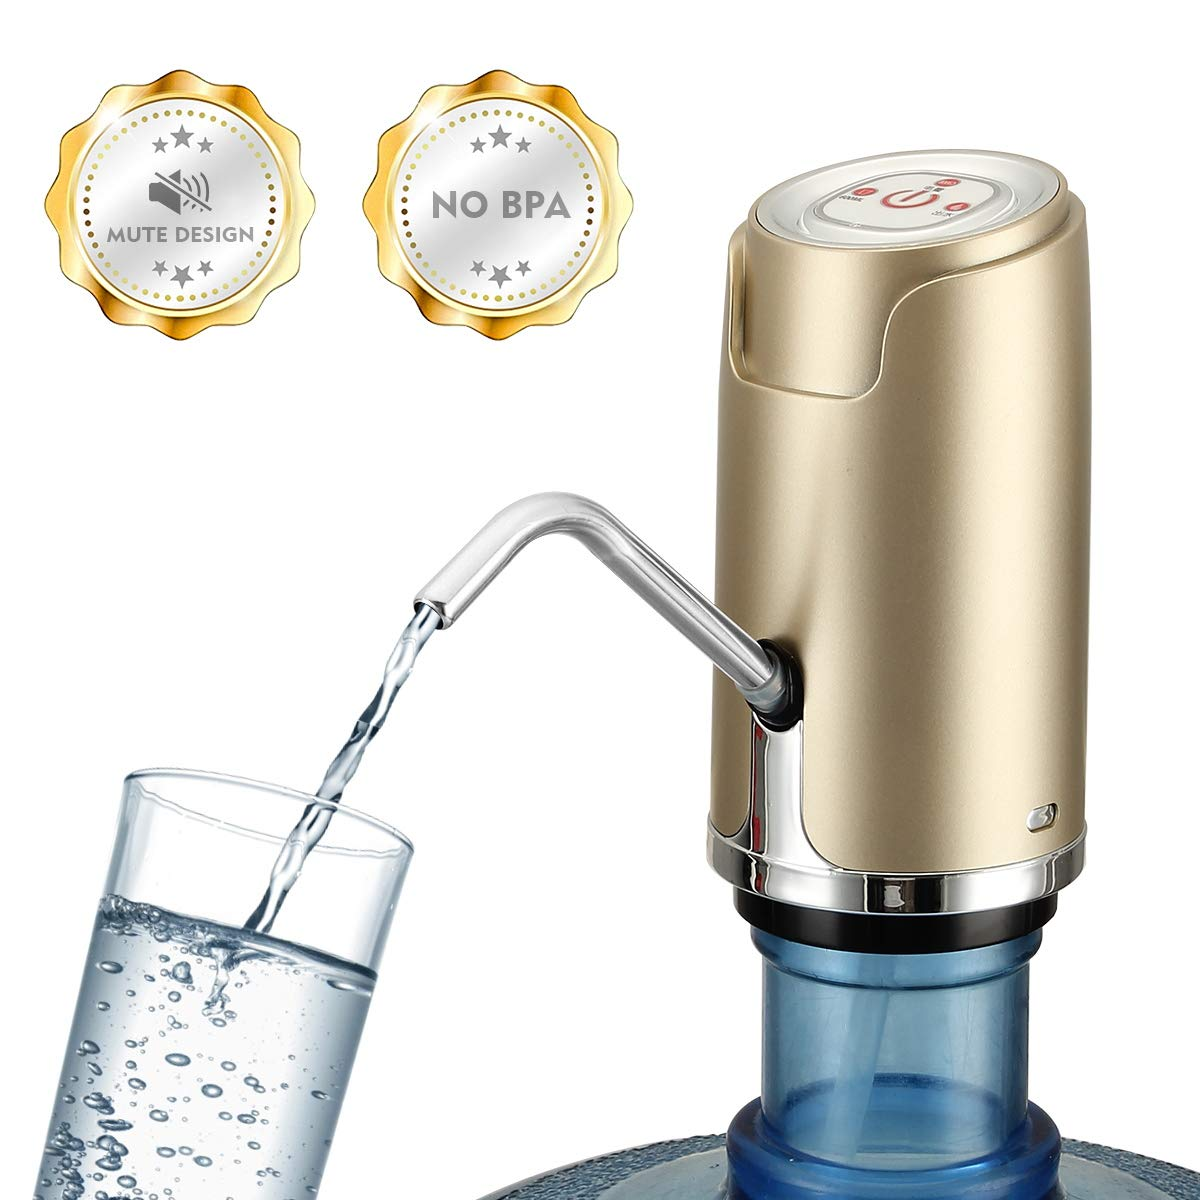 【Upgraded Version】Water Bottle Pump, USB Charging Water Dispenser-Protable Compact Electric Drinking Water Pump, Silent Design-Fits for 2 to 5 Gallon Universal Water Bottle